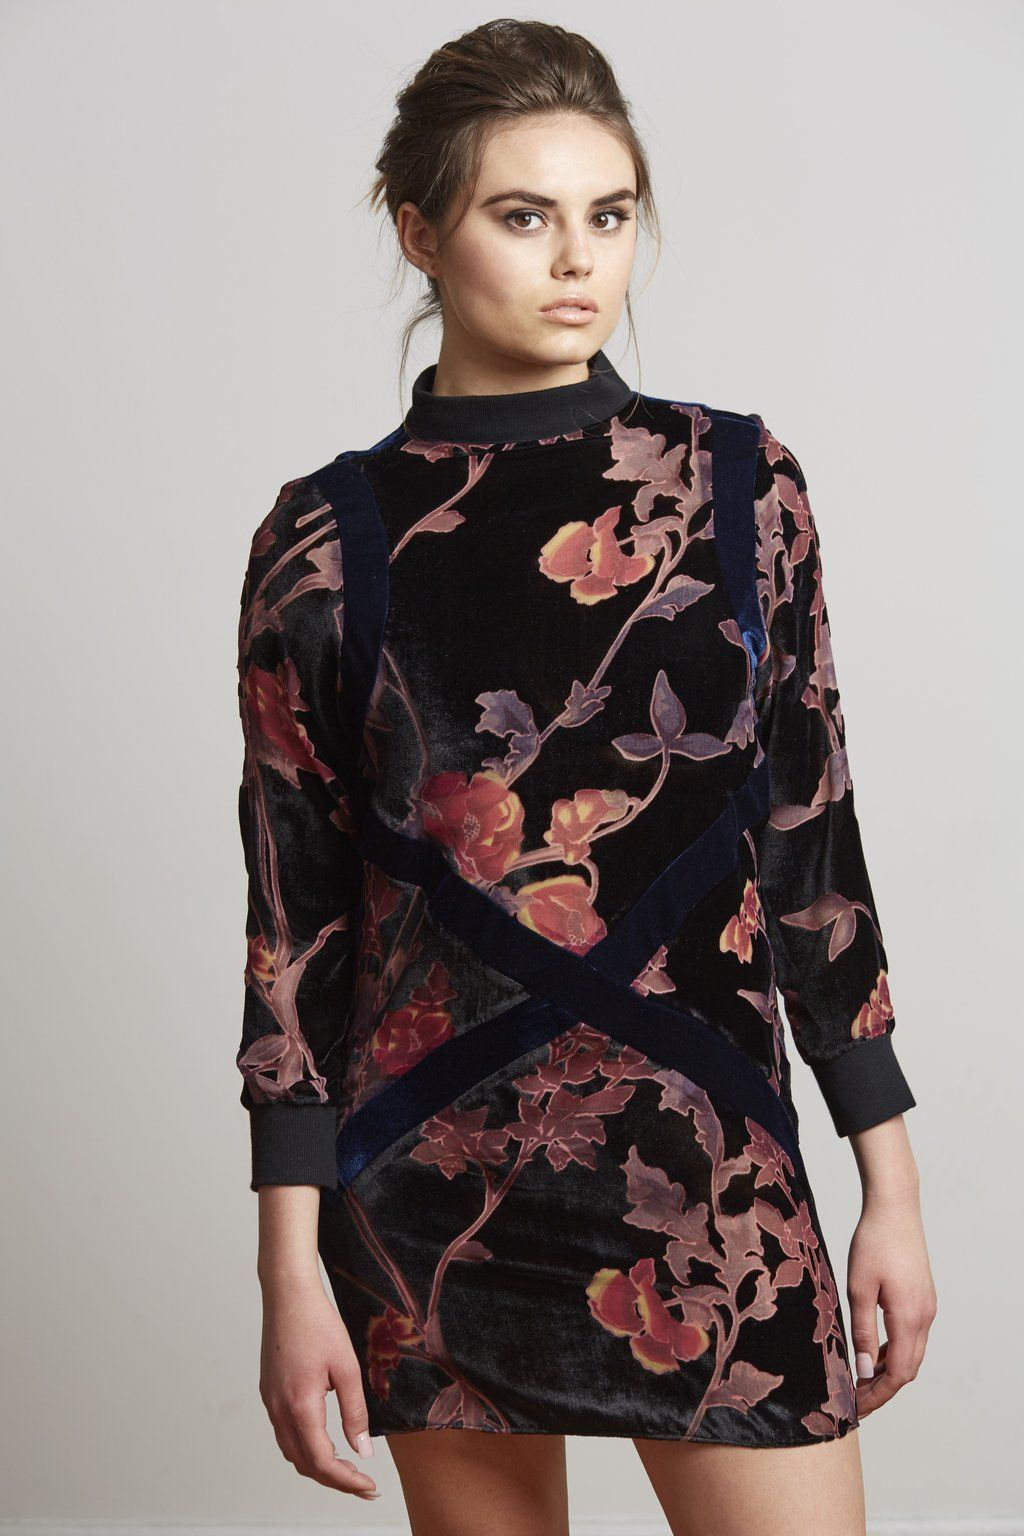 40f3b52eb08334 The Best Fall Fashion For Curves